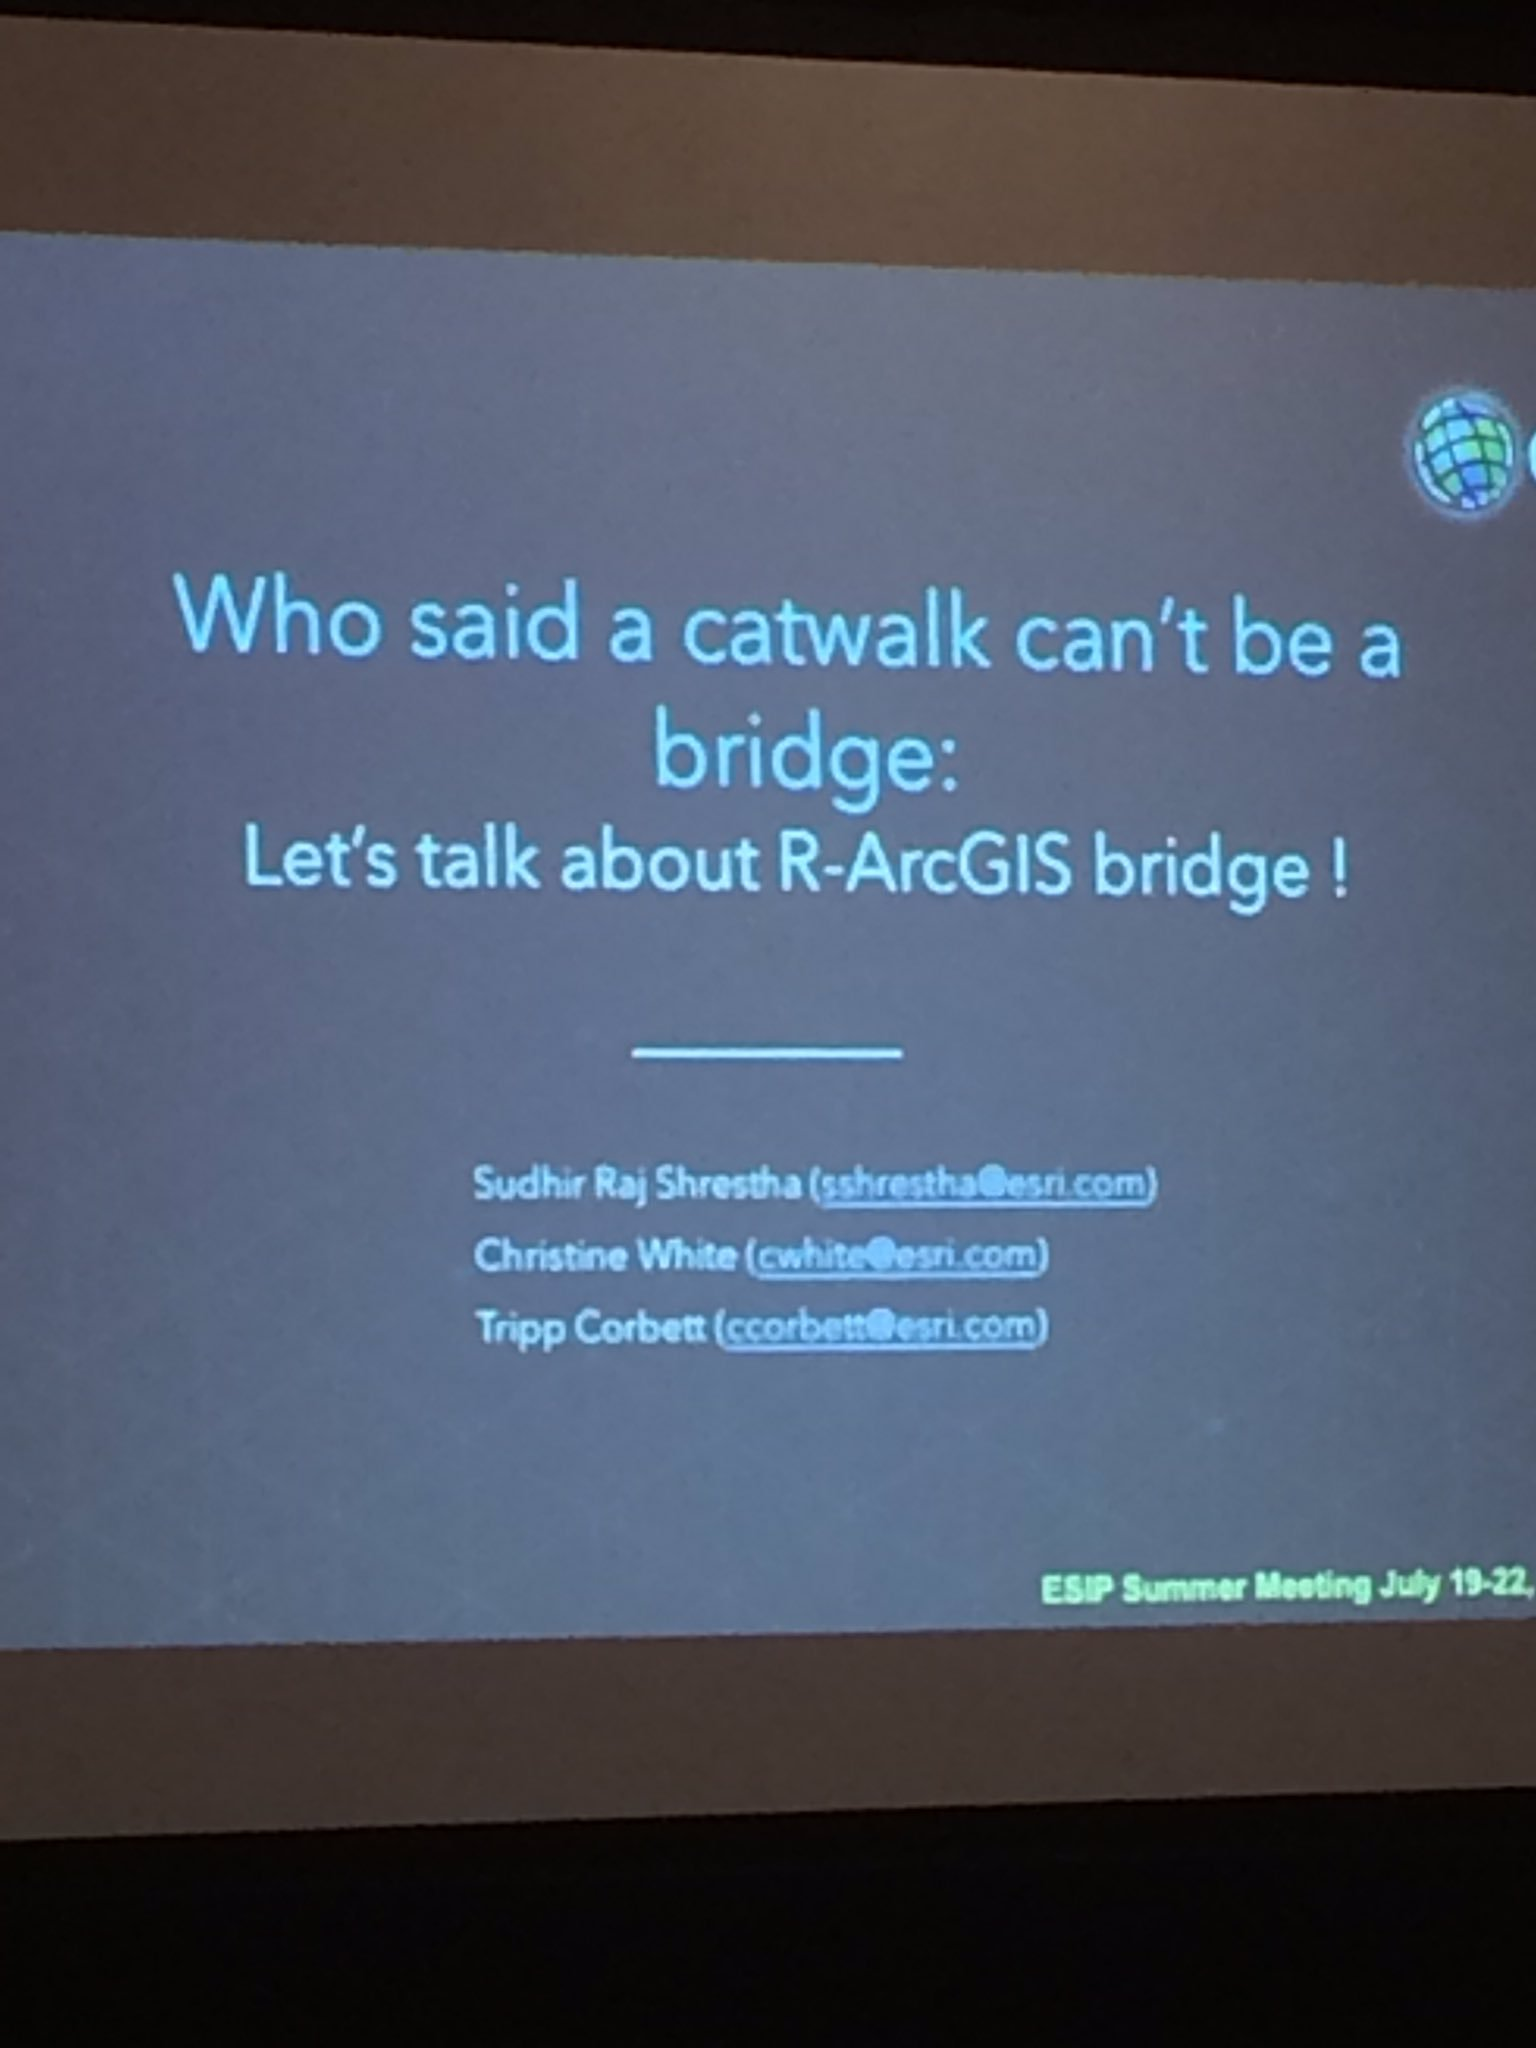 #ArcGIS #RBridge #R #ESIPfed #catwalk #ESRI https://t.co/m4N9vv8f8s